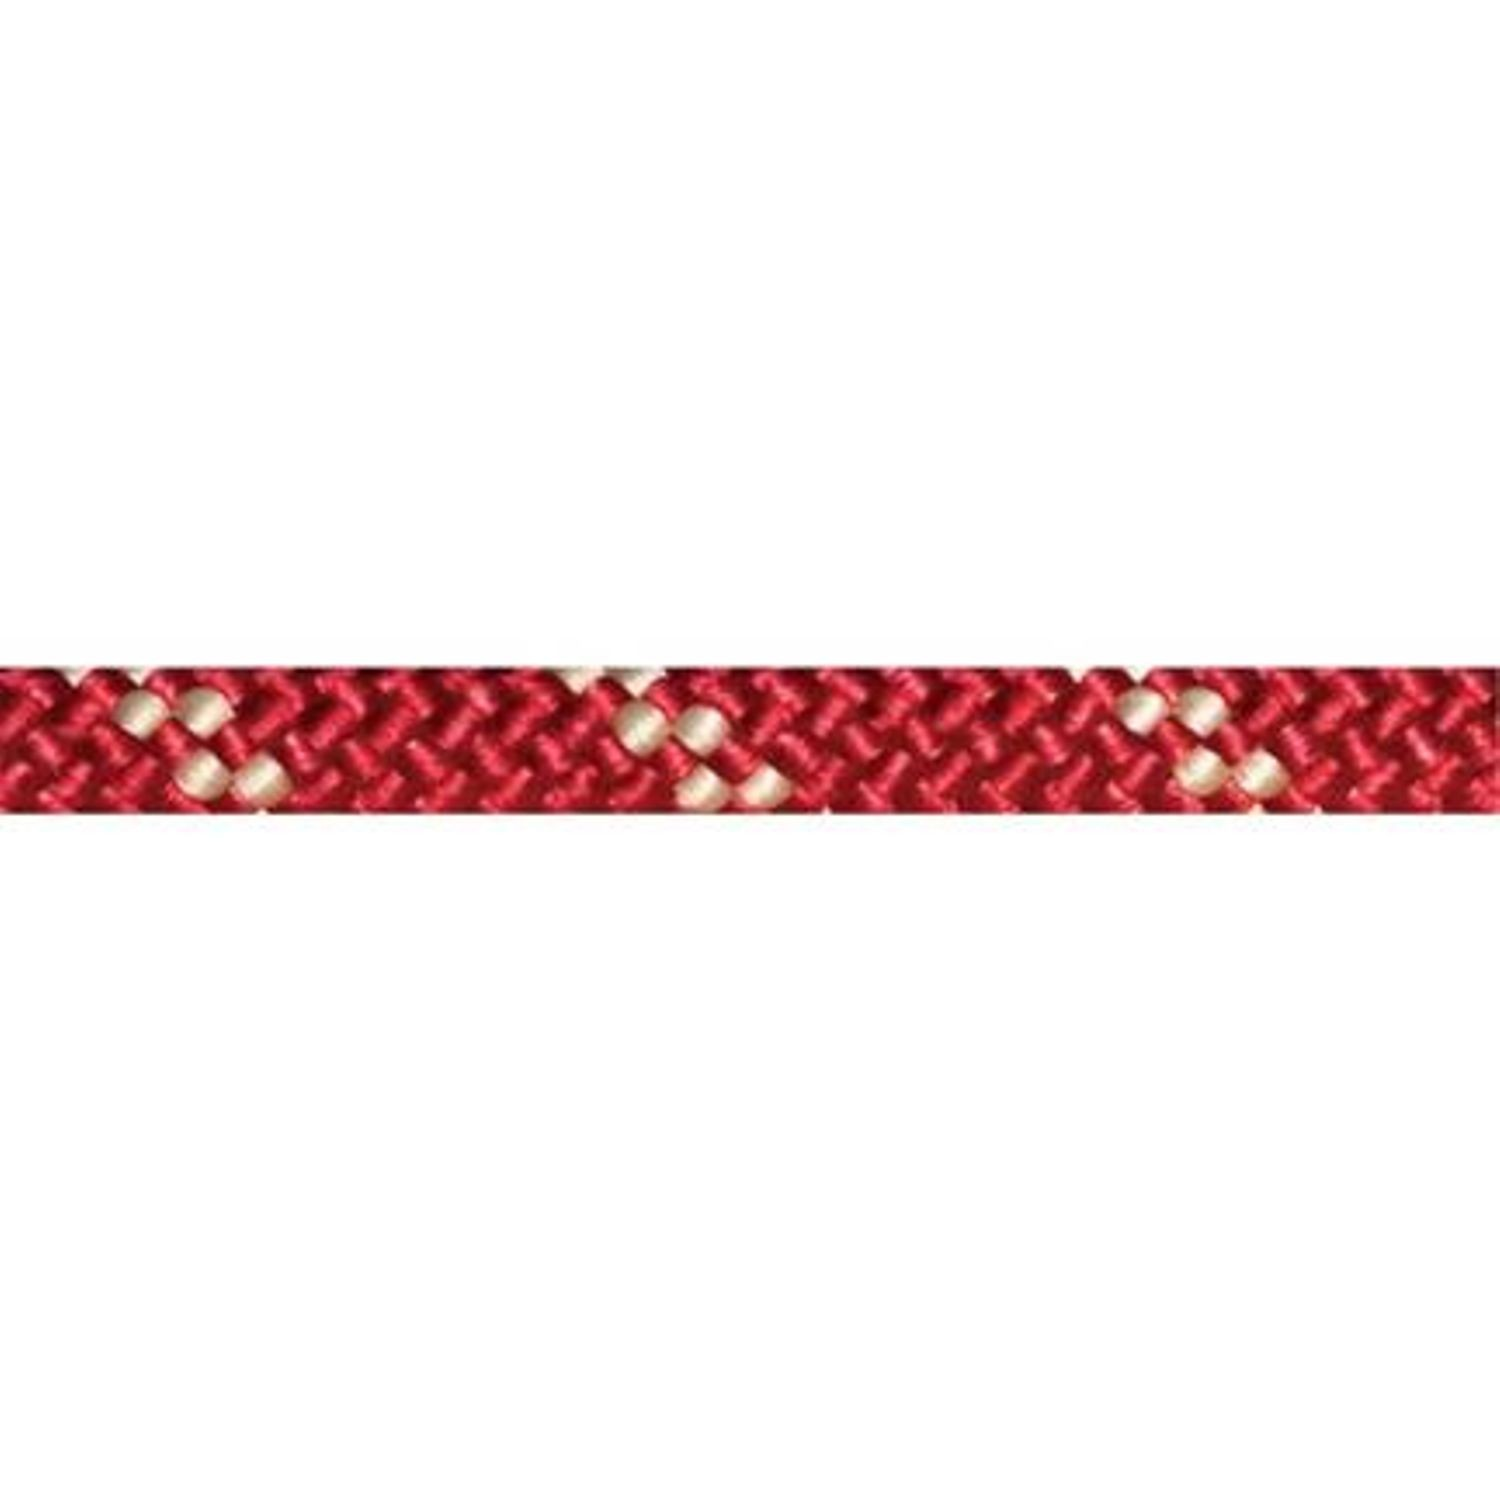 12.5 MM RED/WHITE STATIC KERNMANTLE ROPE, 300 FT.